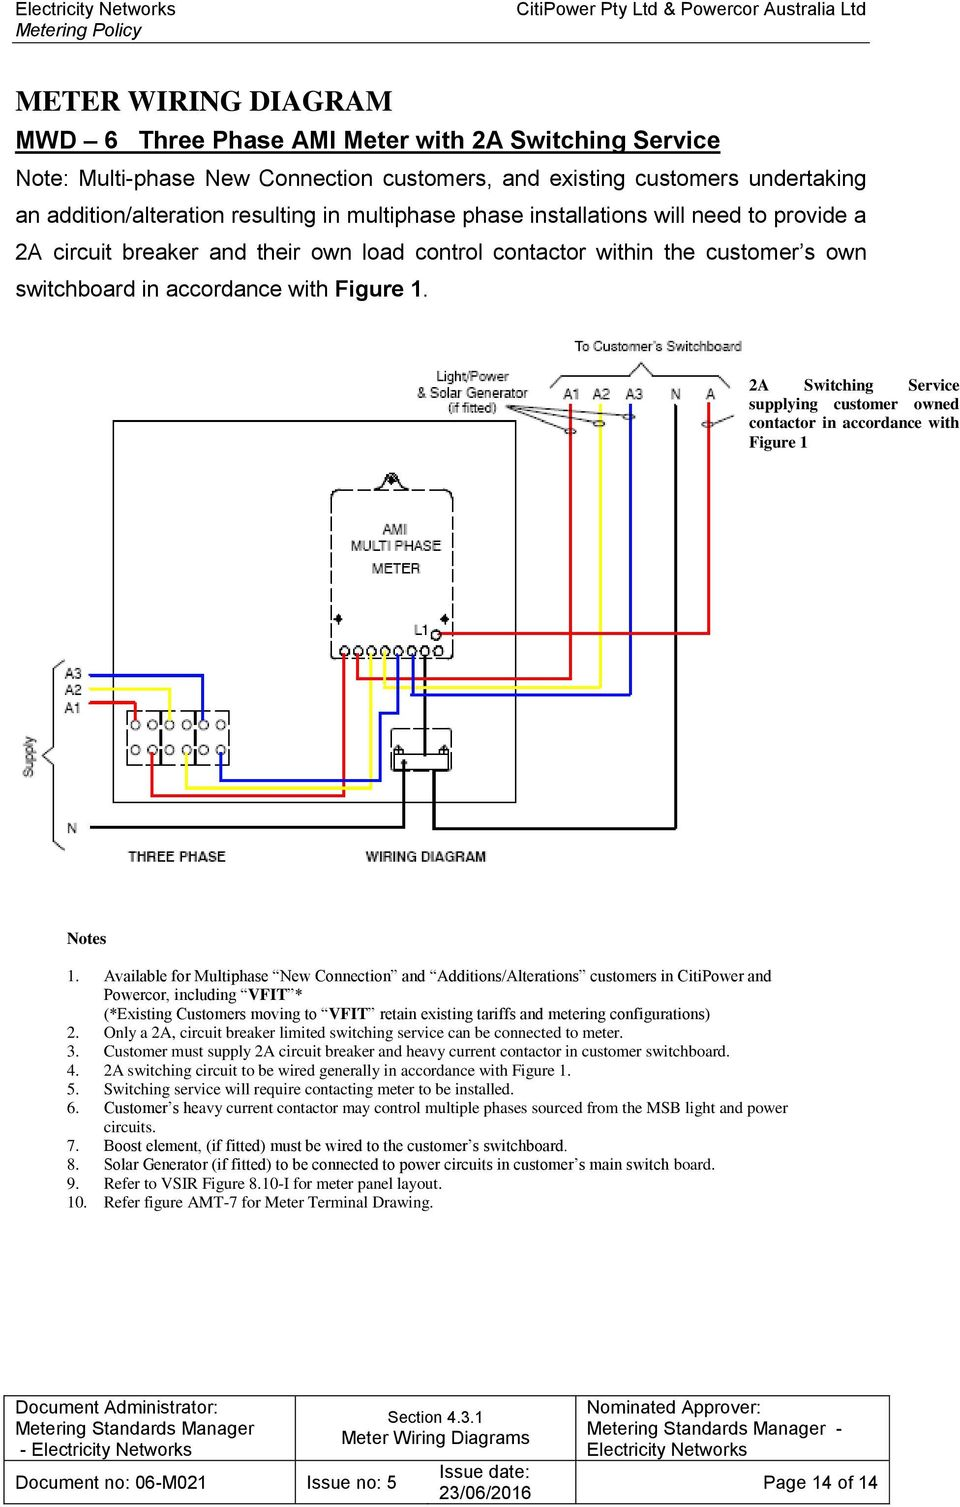 Meter Panel Wiring Diagram Victoria